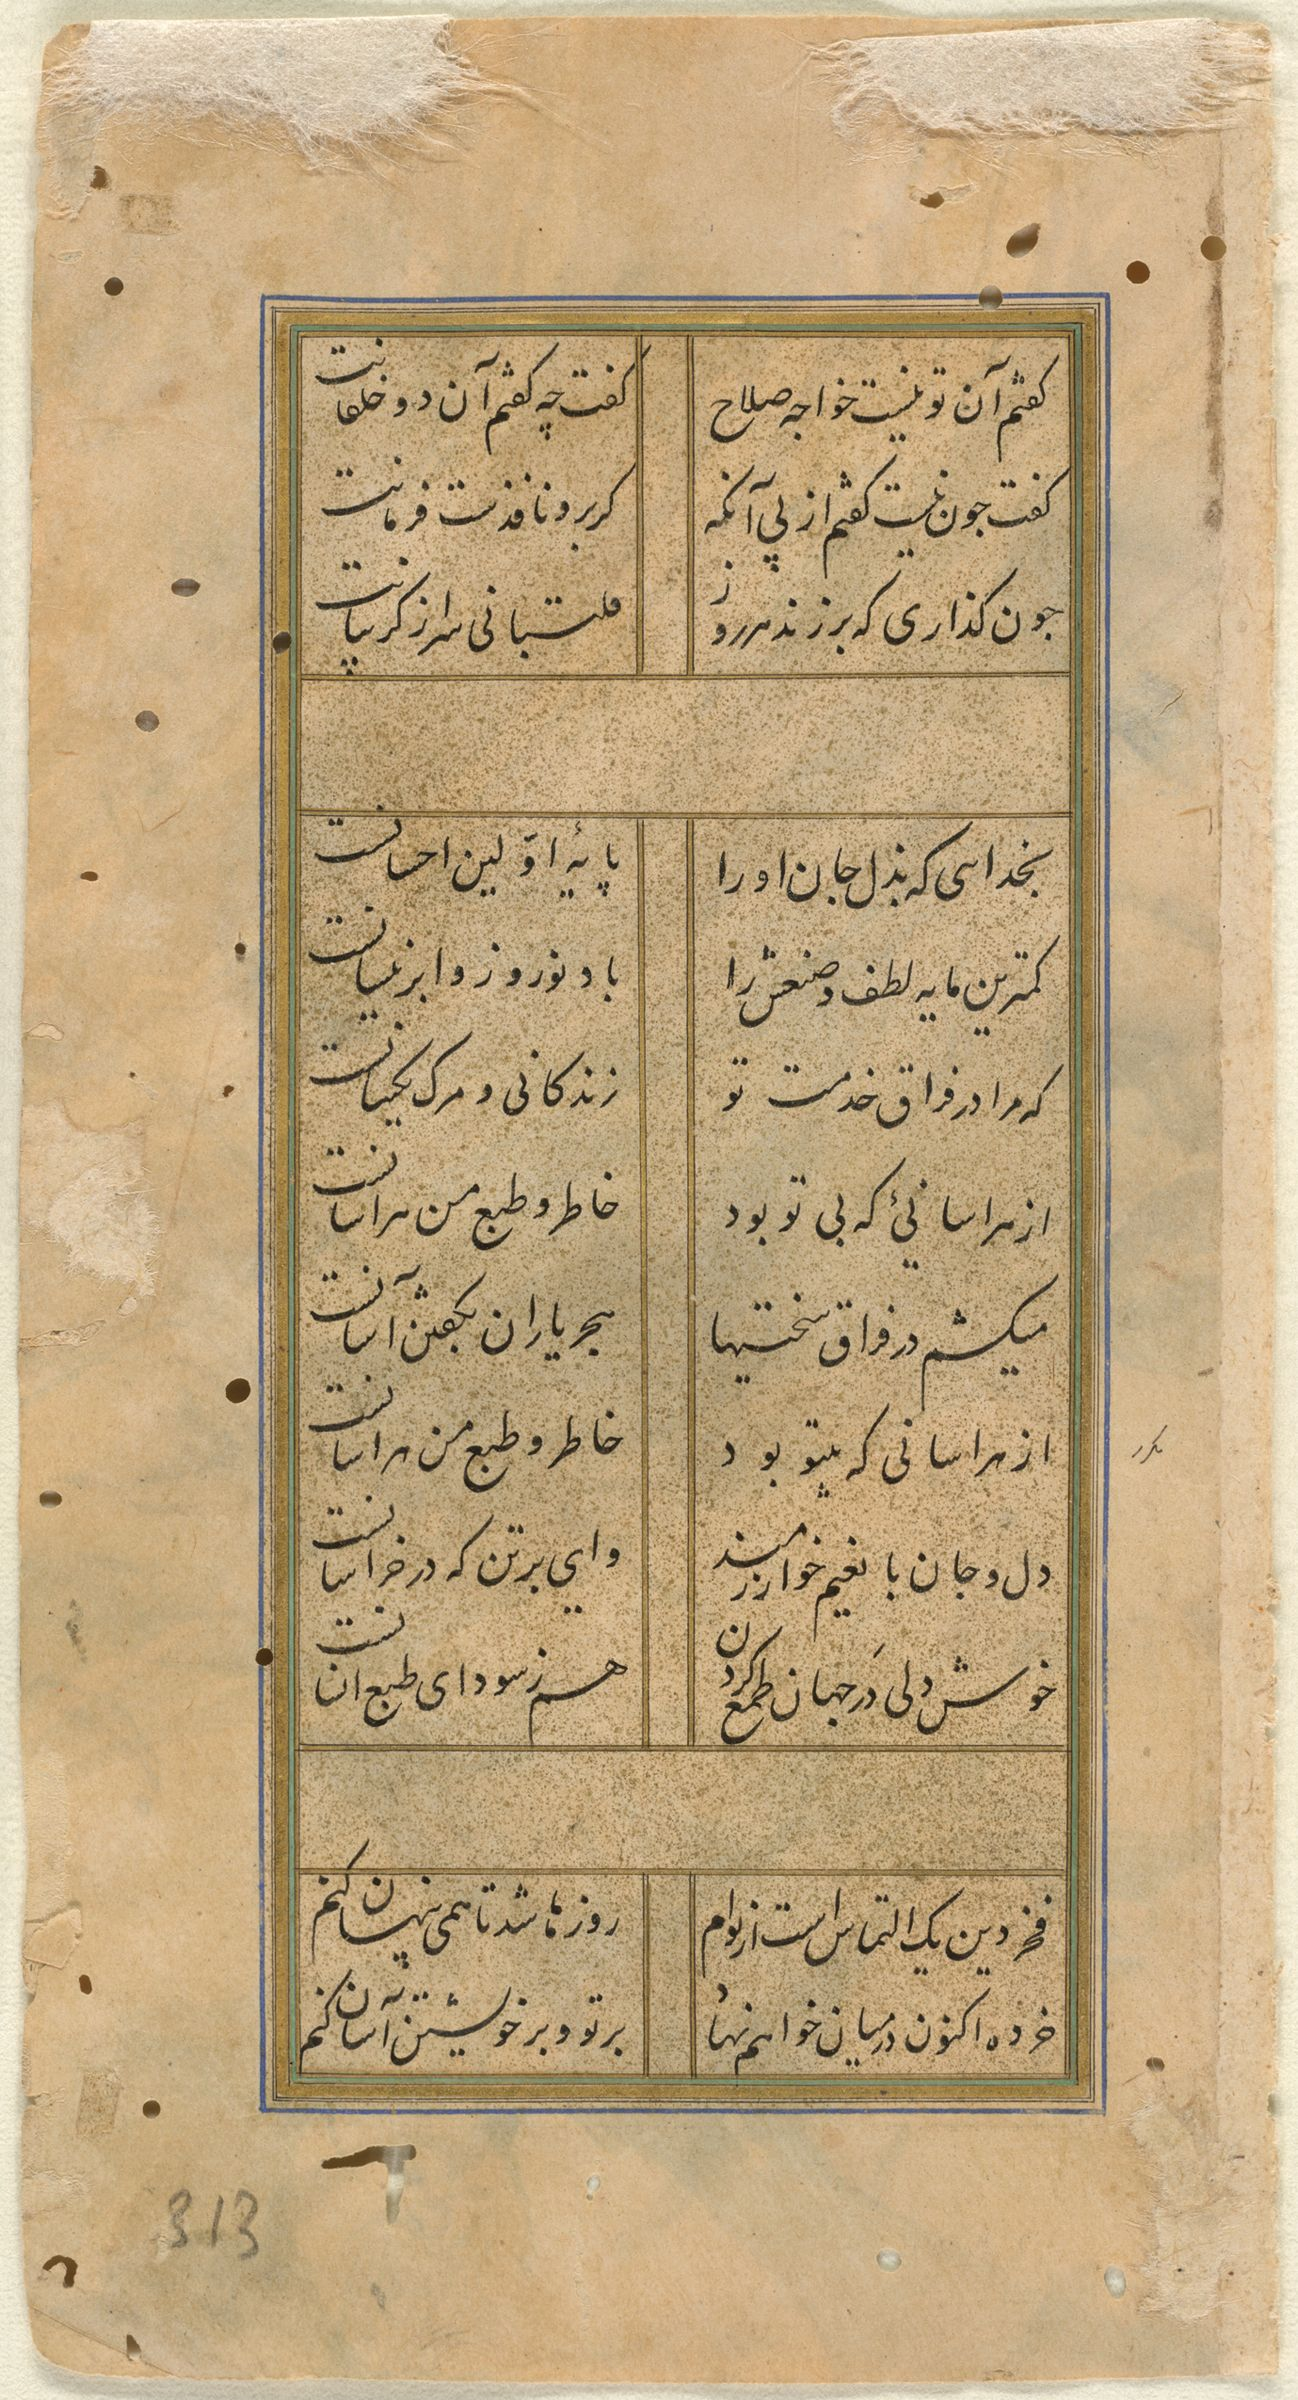 Folio 313 (Text, Recto And Verso), From A Manuscript Of The Divan (Collection Of Works) Of Anvari